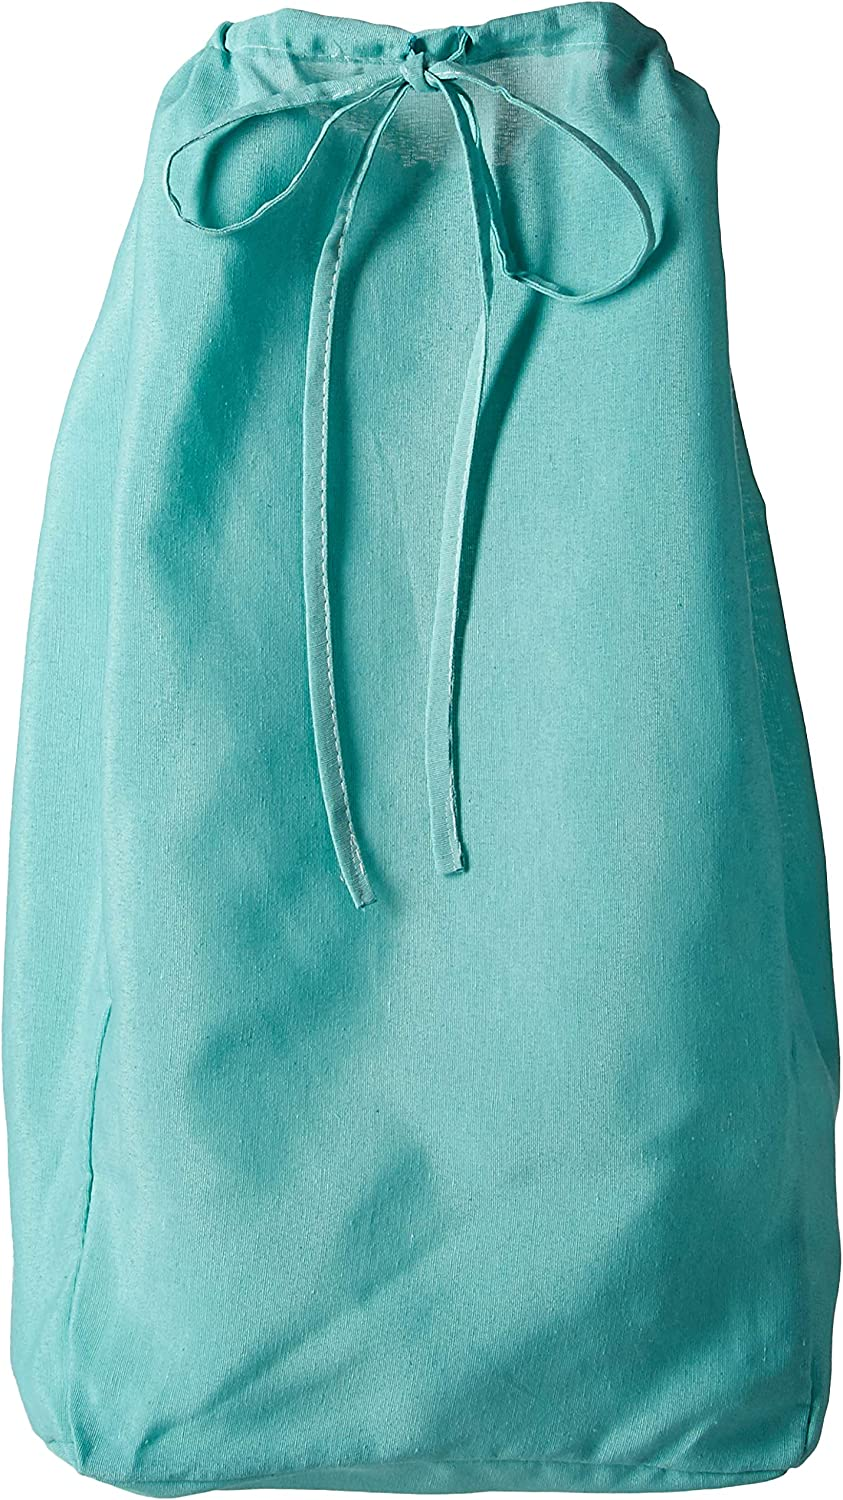 Redmon Rectangular Willow Hamper Cloth Teal Liner